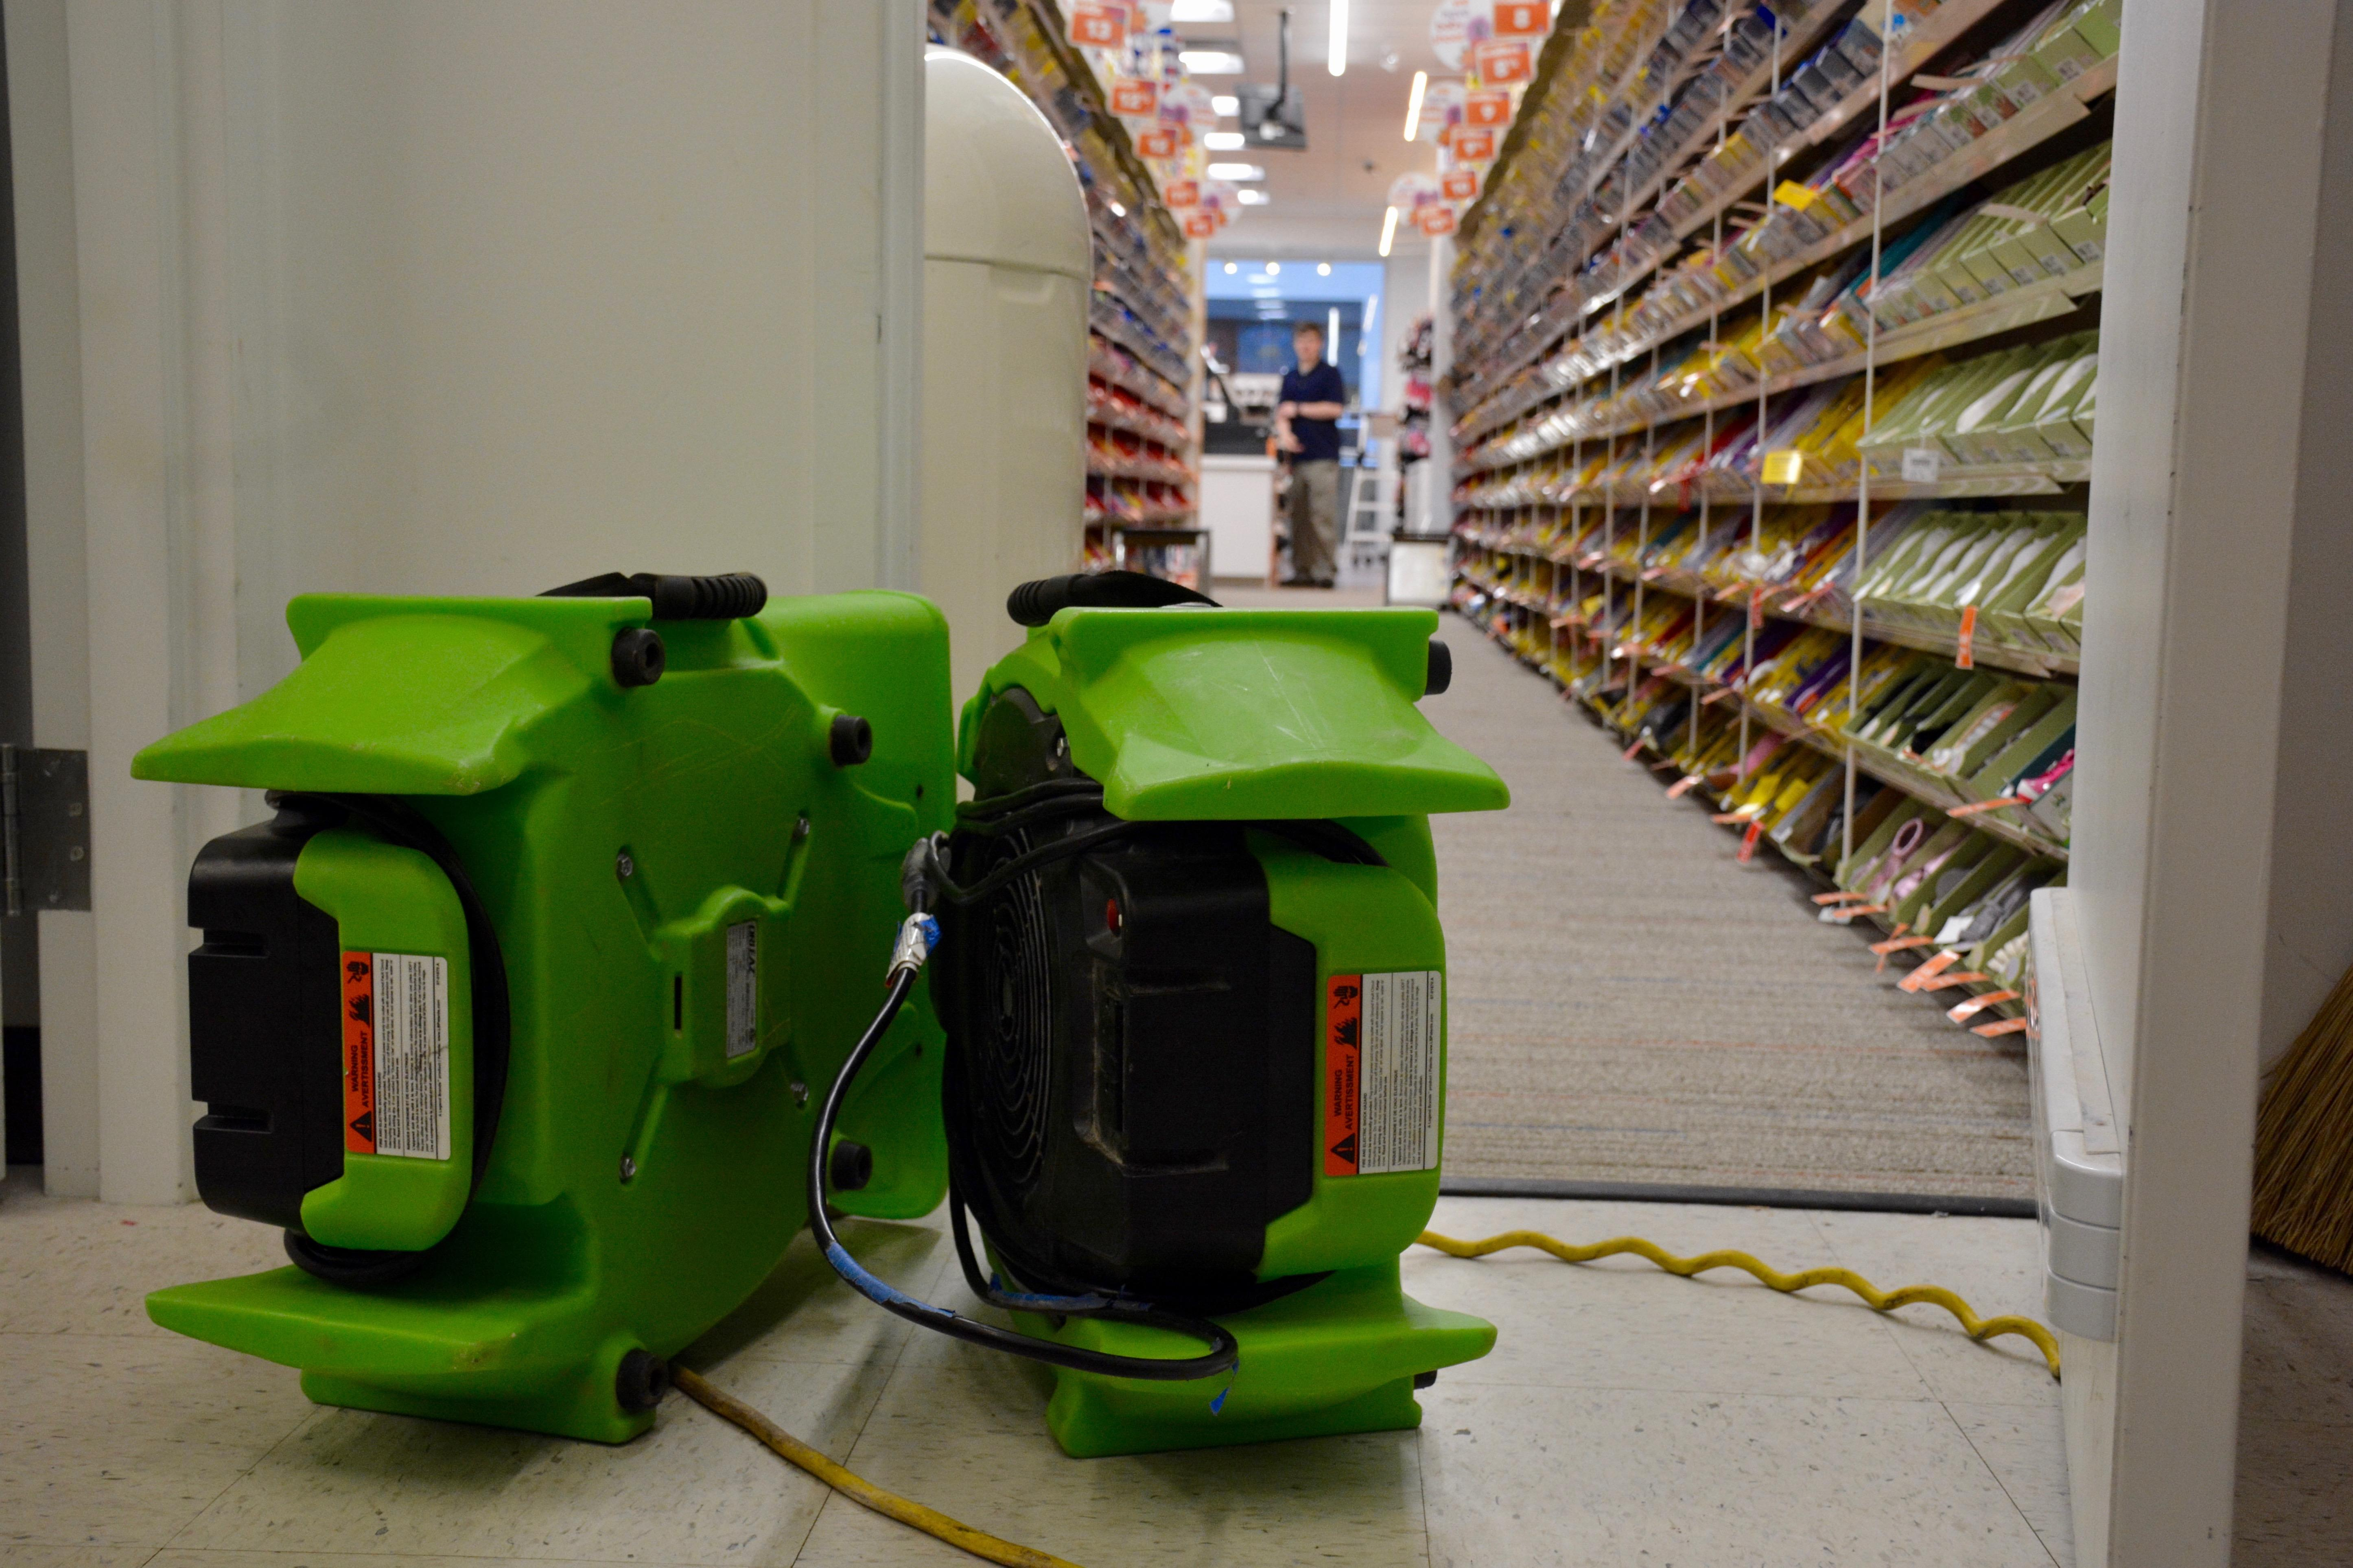 The air movers are up and running during a commercial restoration.